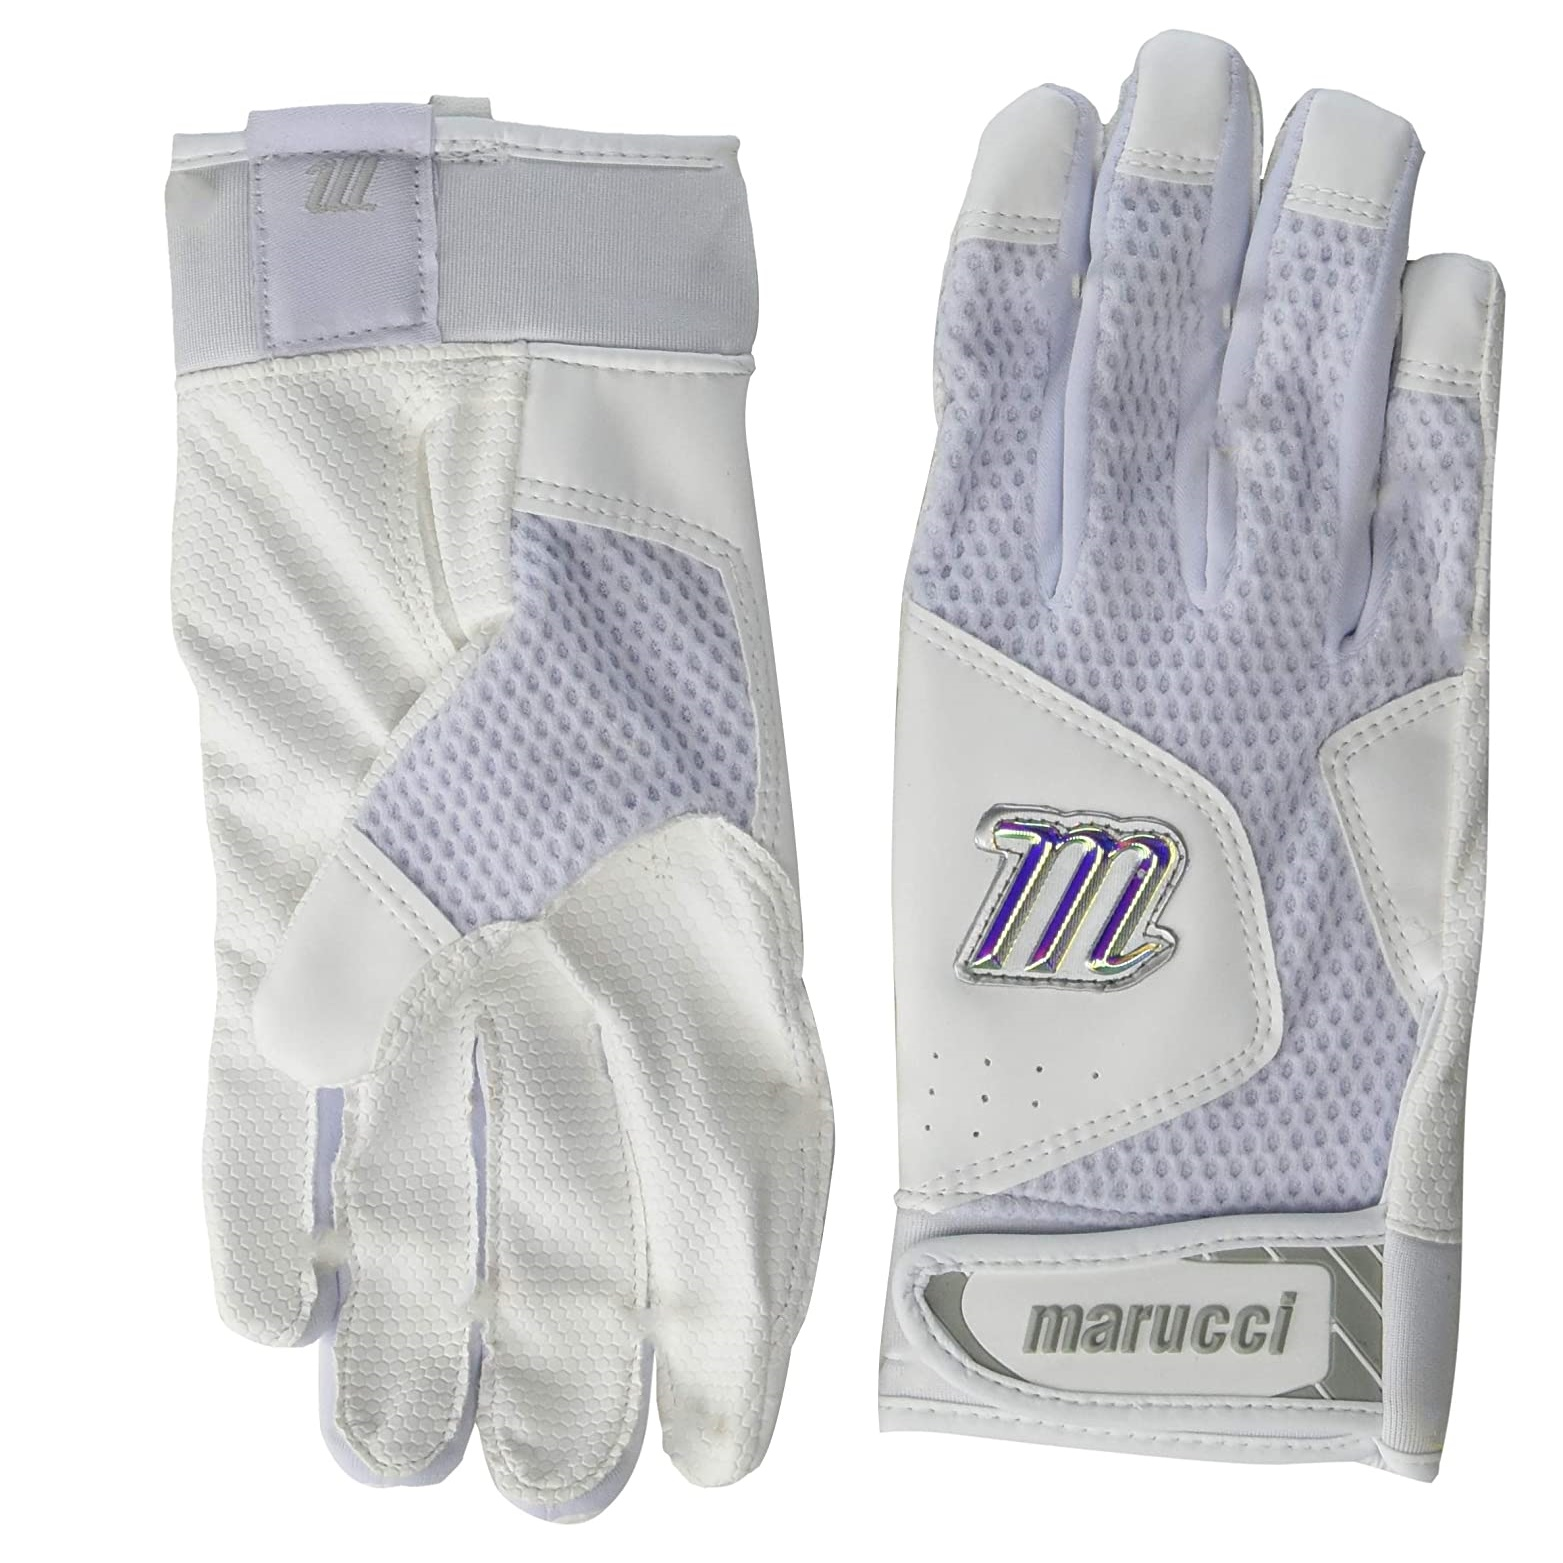 marucci-mbgqst2-w-r-axxl-quest-2-batting-gloves-red-adult-xxl MBGQST2-WR-AXXL Marucci  An evolution of Marucci's earlier batting glove line this year's Quest